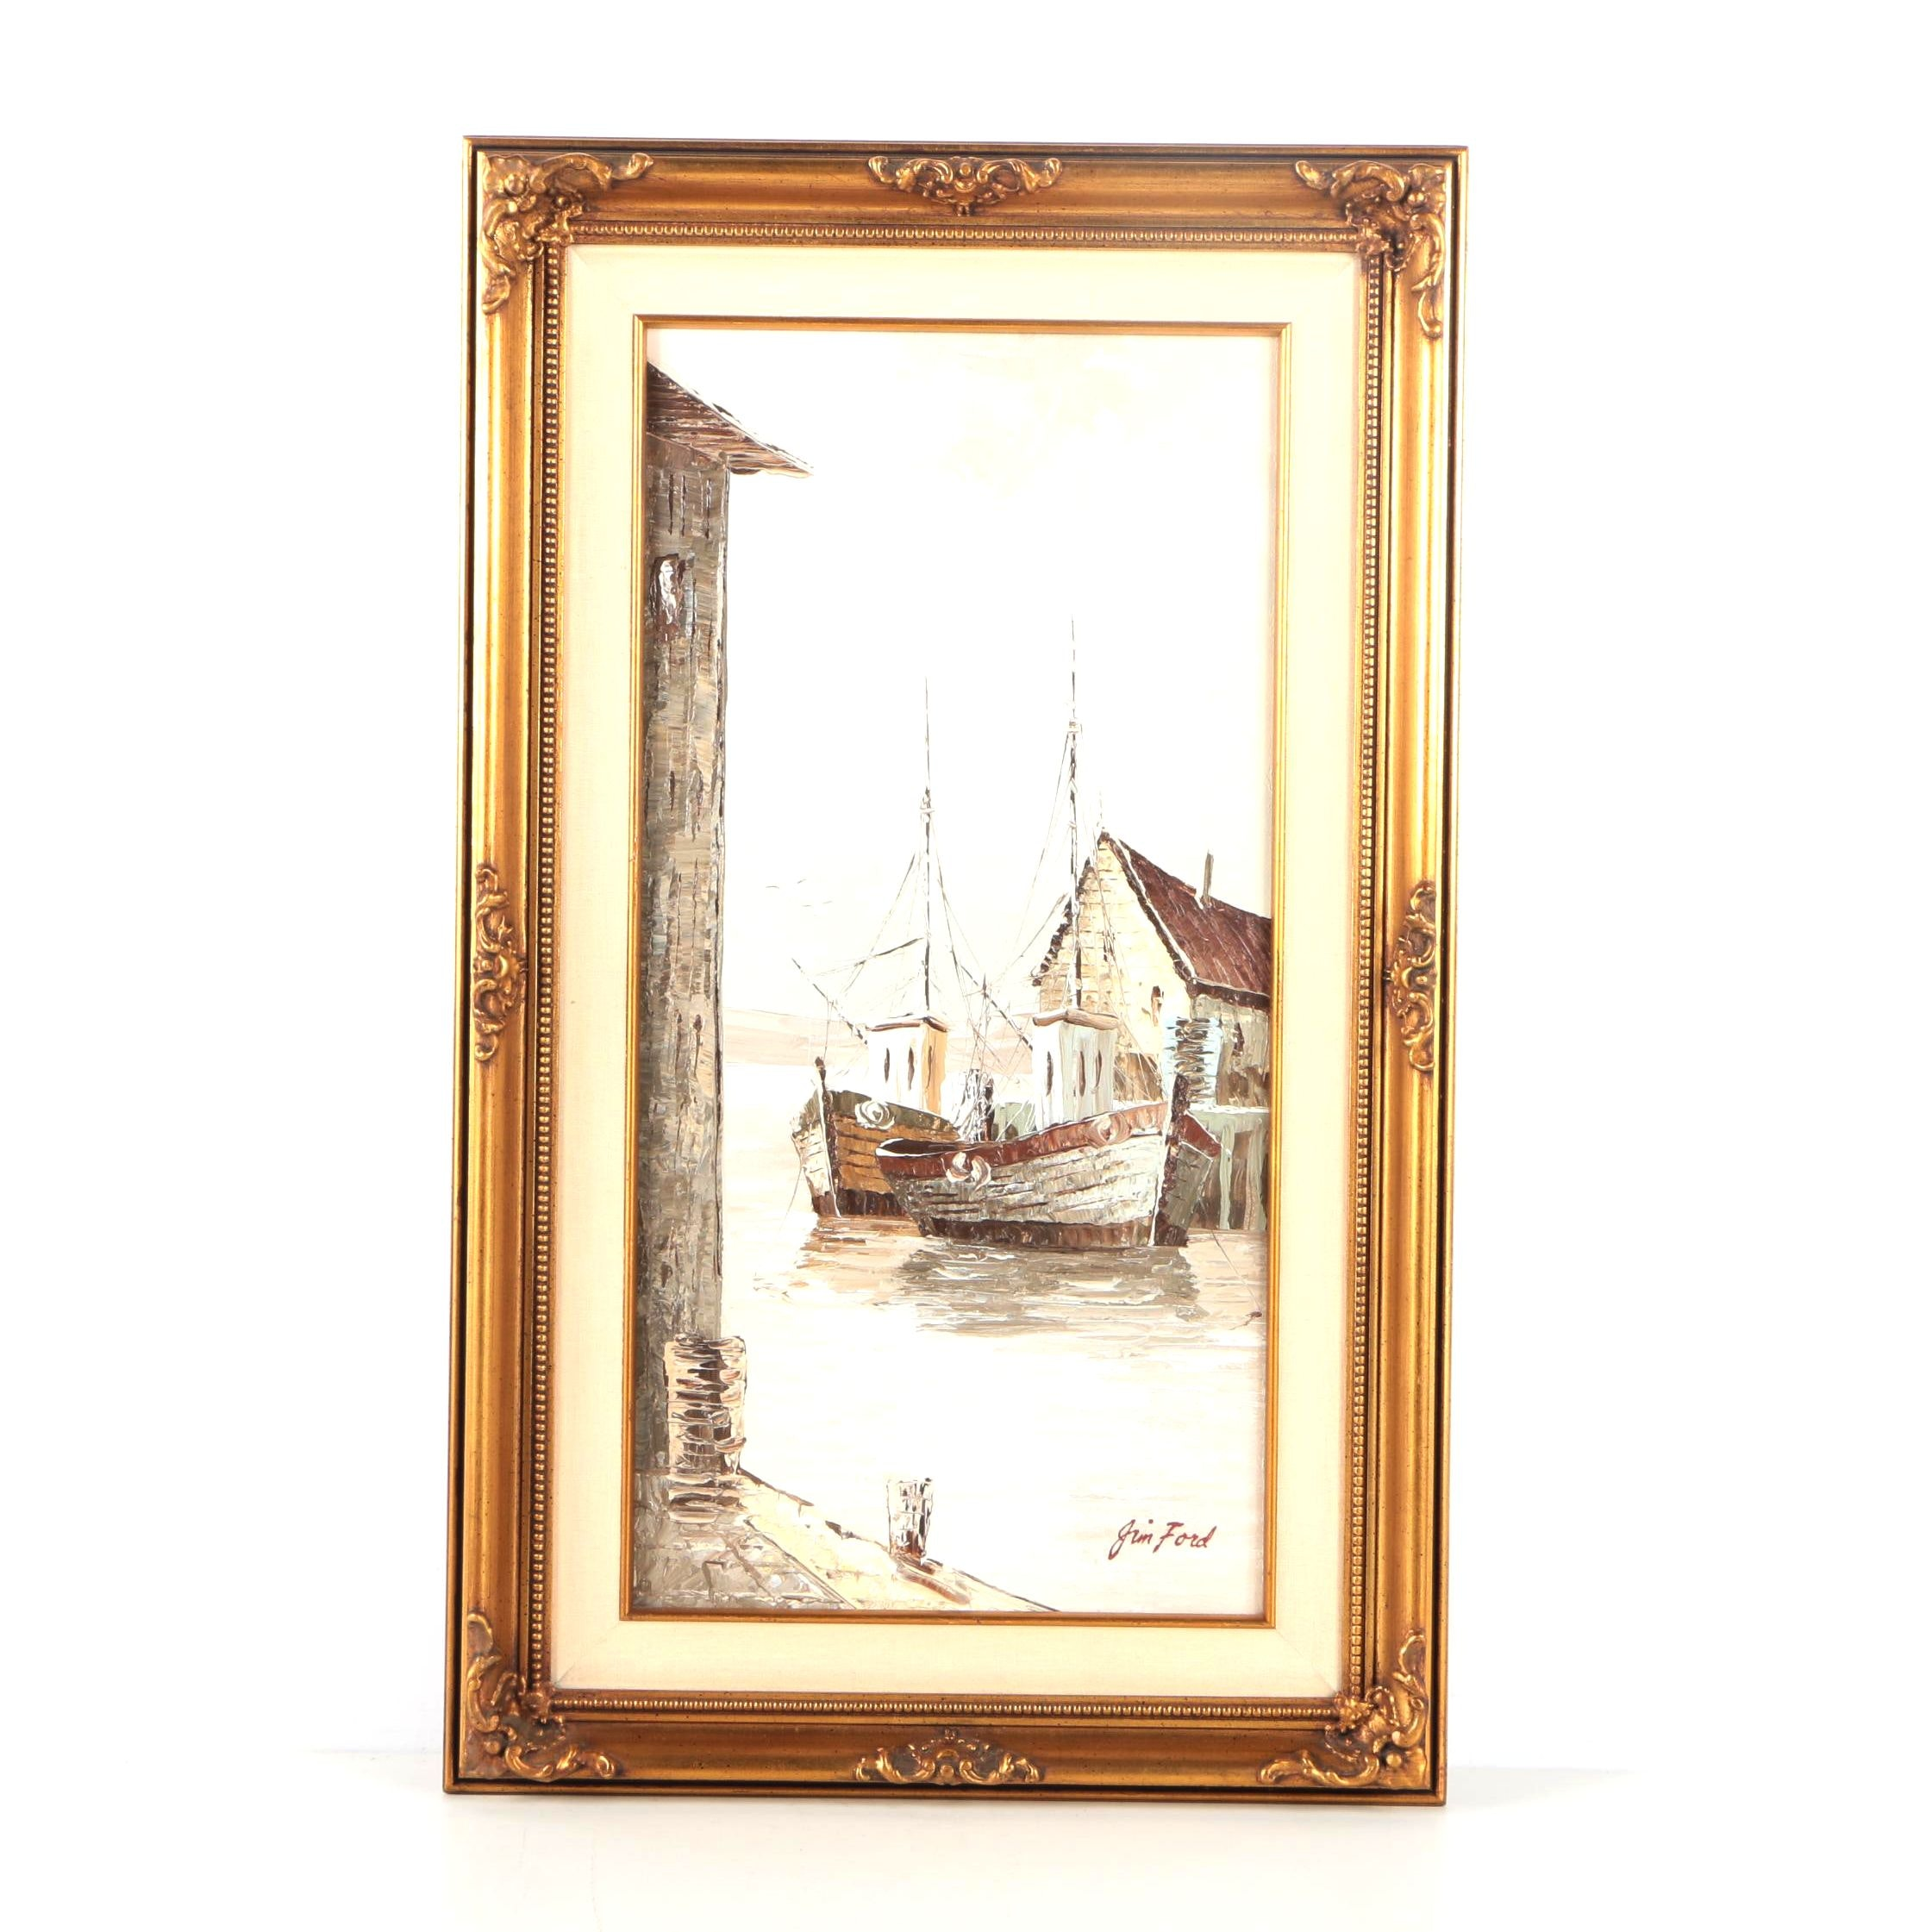 Jim Ford Oil Painting on Canvas of a Harbor Scene